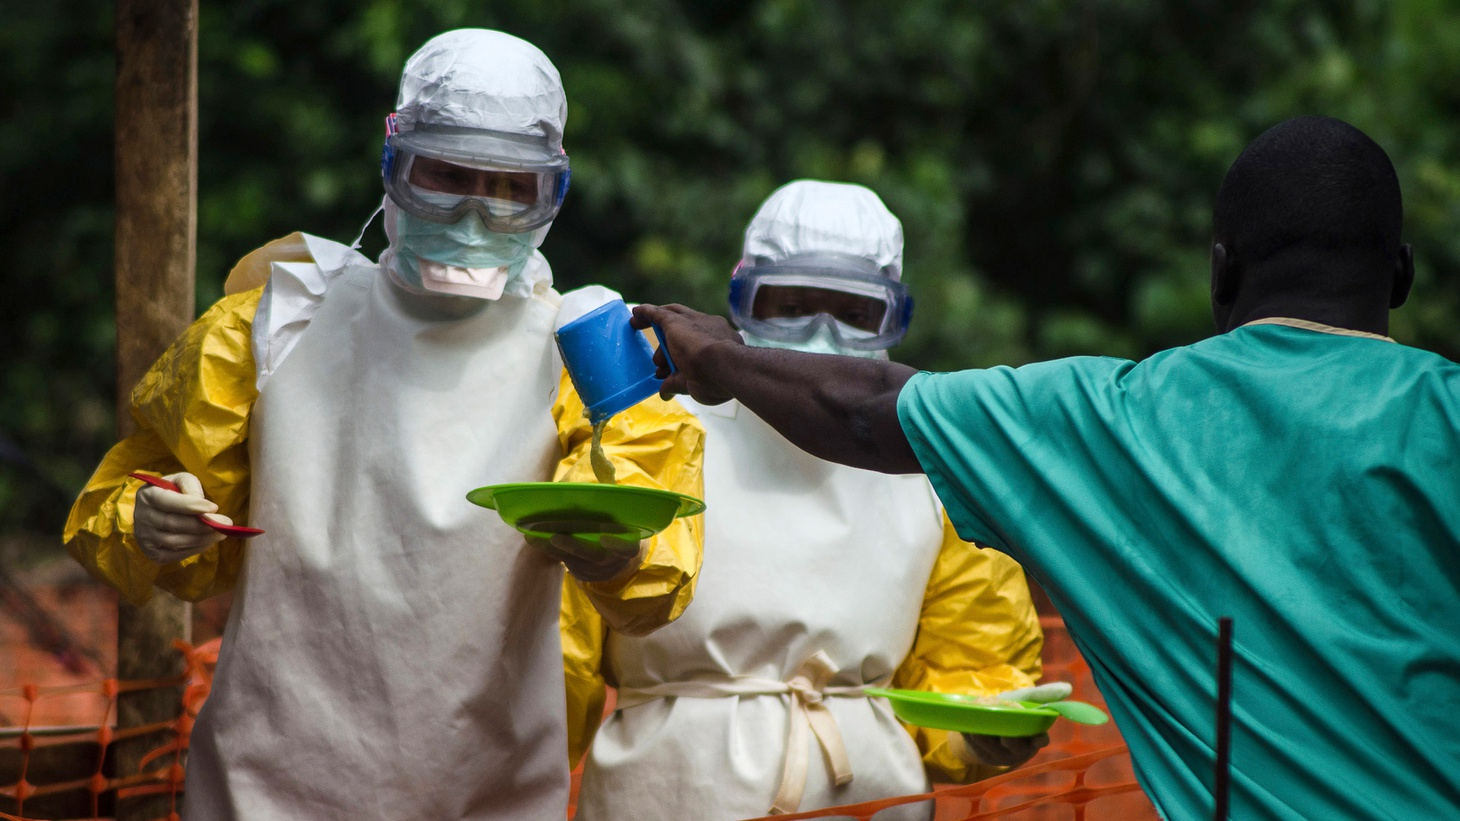 Almost 700 people have died, and more than a thousand have been infected, in the worst epidemic since the Ebola virus was discovered in 1976. We'll hear about a horrific disease with no cure, and West Africa's widespread fear, not just of Ebola, but also of Western doctors and their unfamiliar procedures.